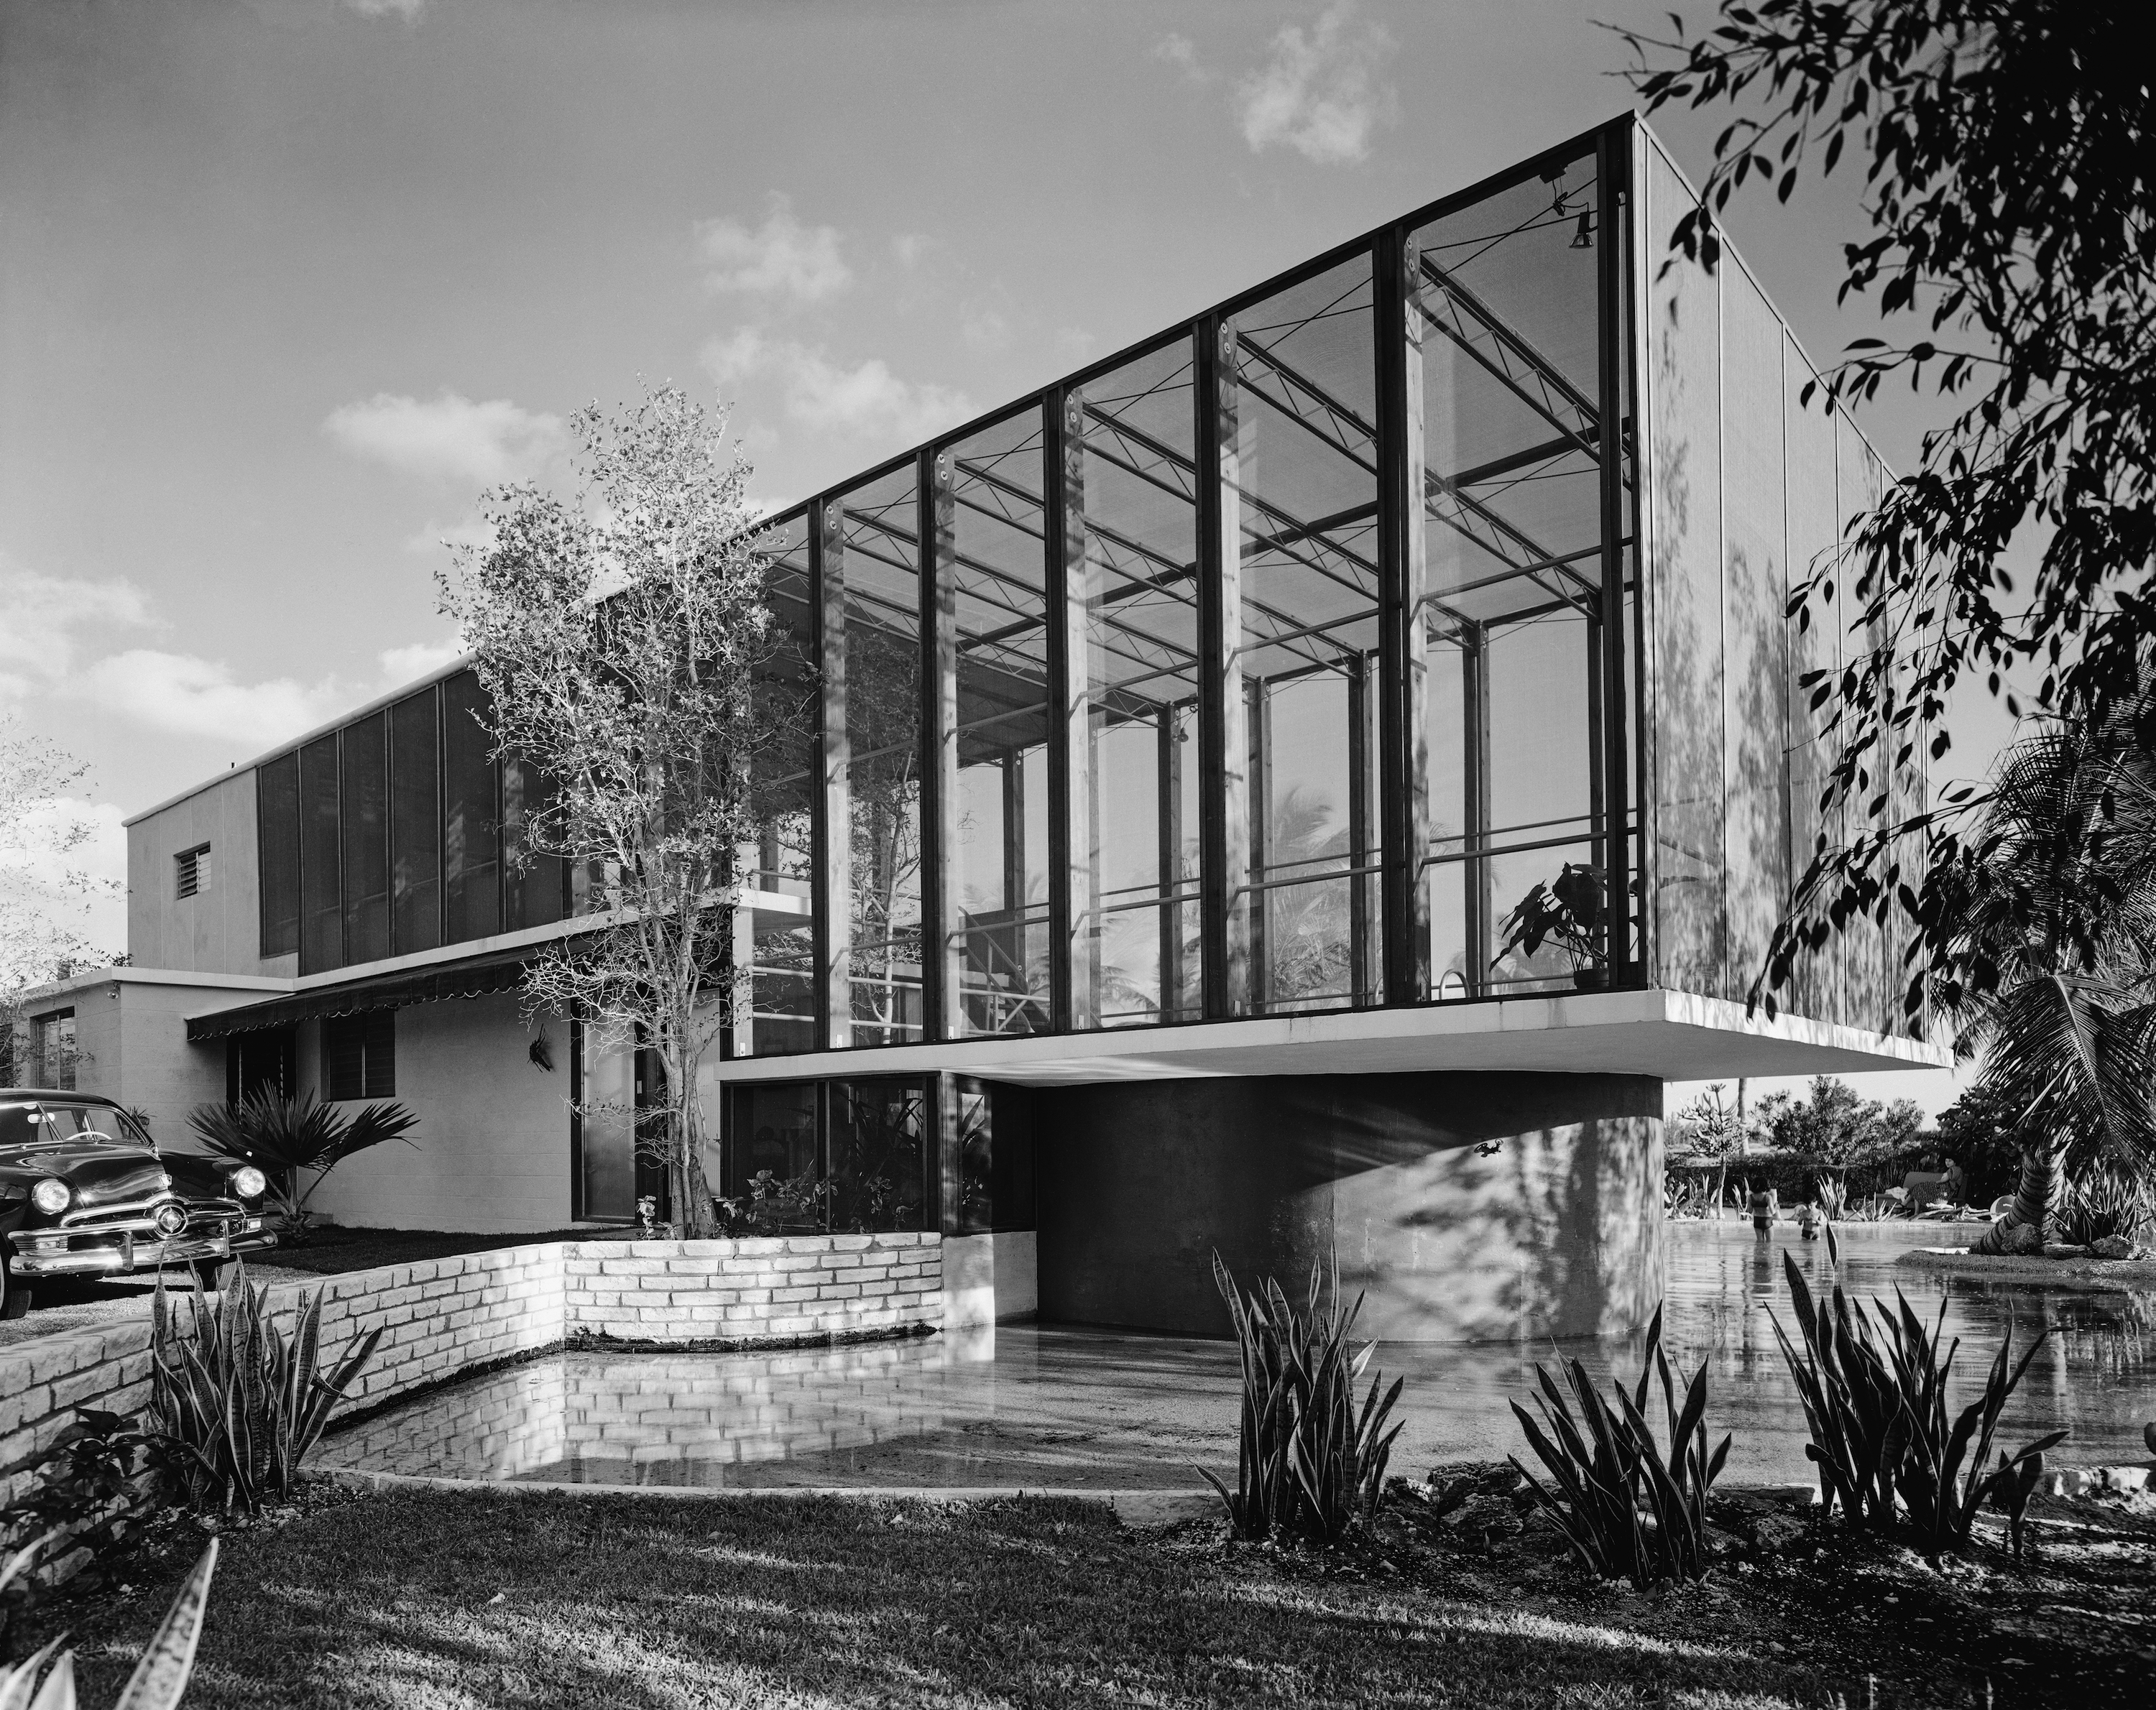 How photographer Ezra Stoller made the world fall in love with modernism